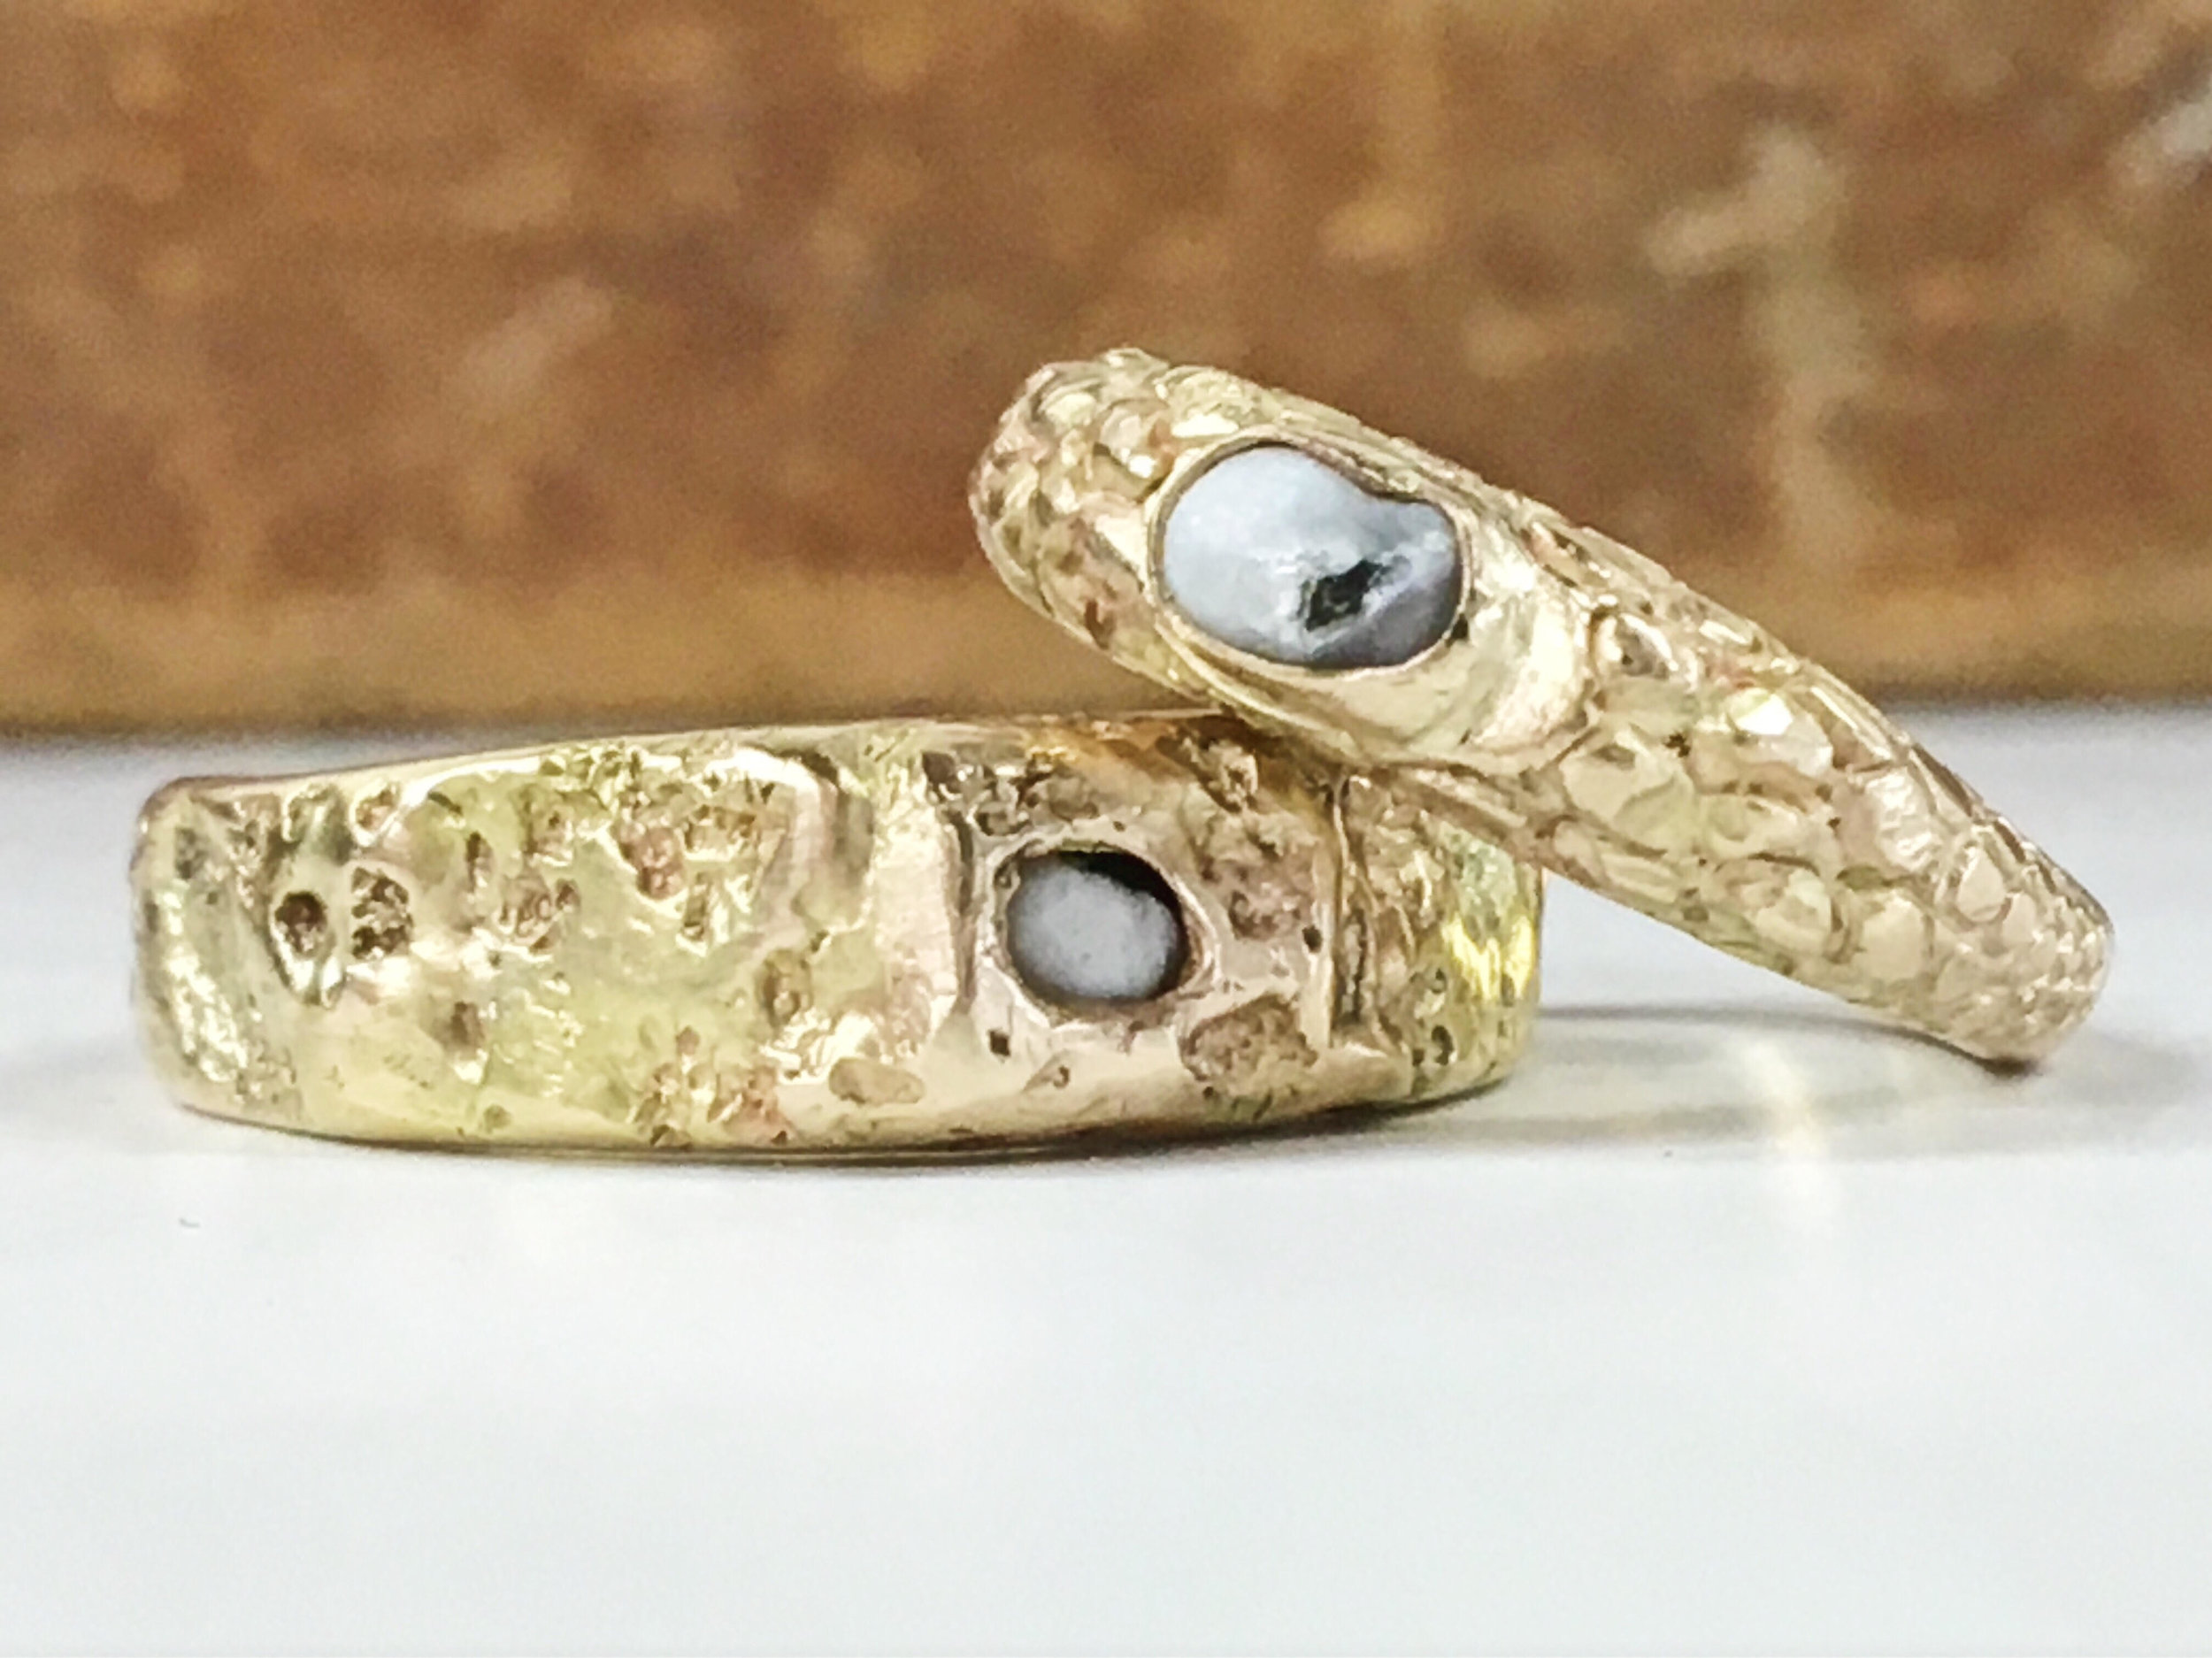 Custom pair of engagement rings carved in the likeness of snake skin and rock textures with bezel setfresh water pearls that my clients found while eating oysters together on the East Coast.